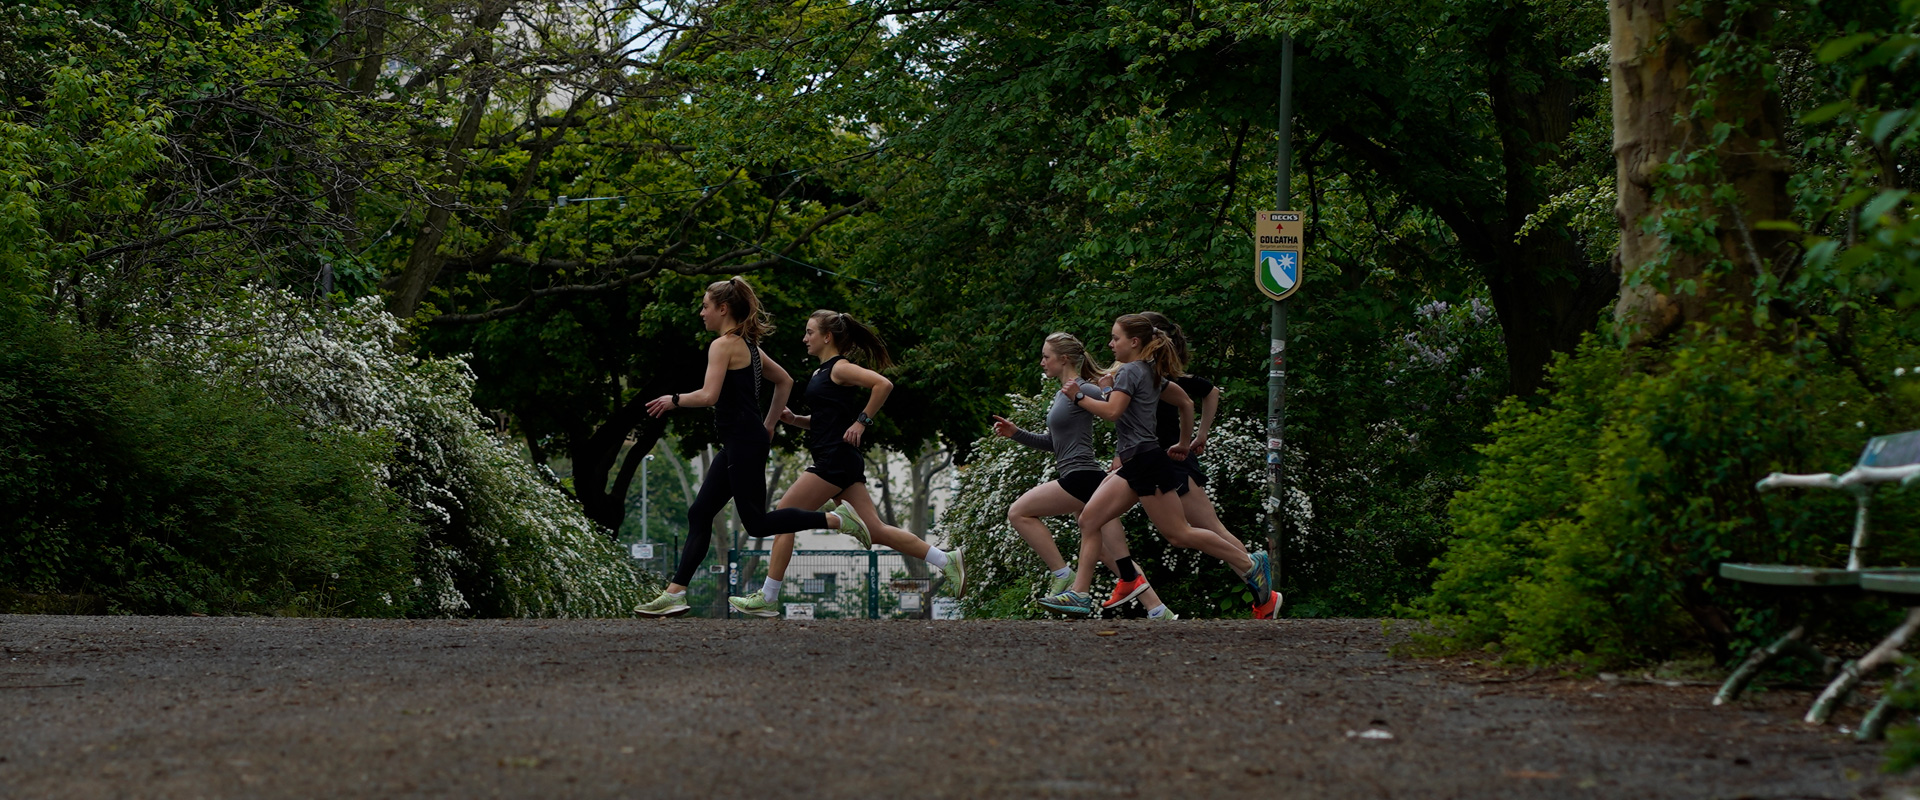 the vision of running girls